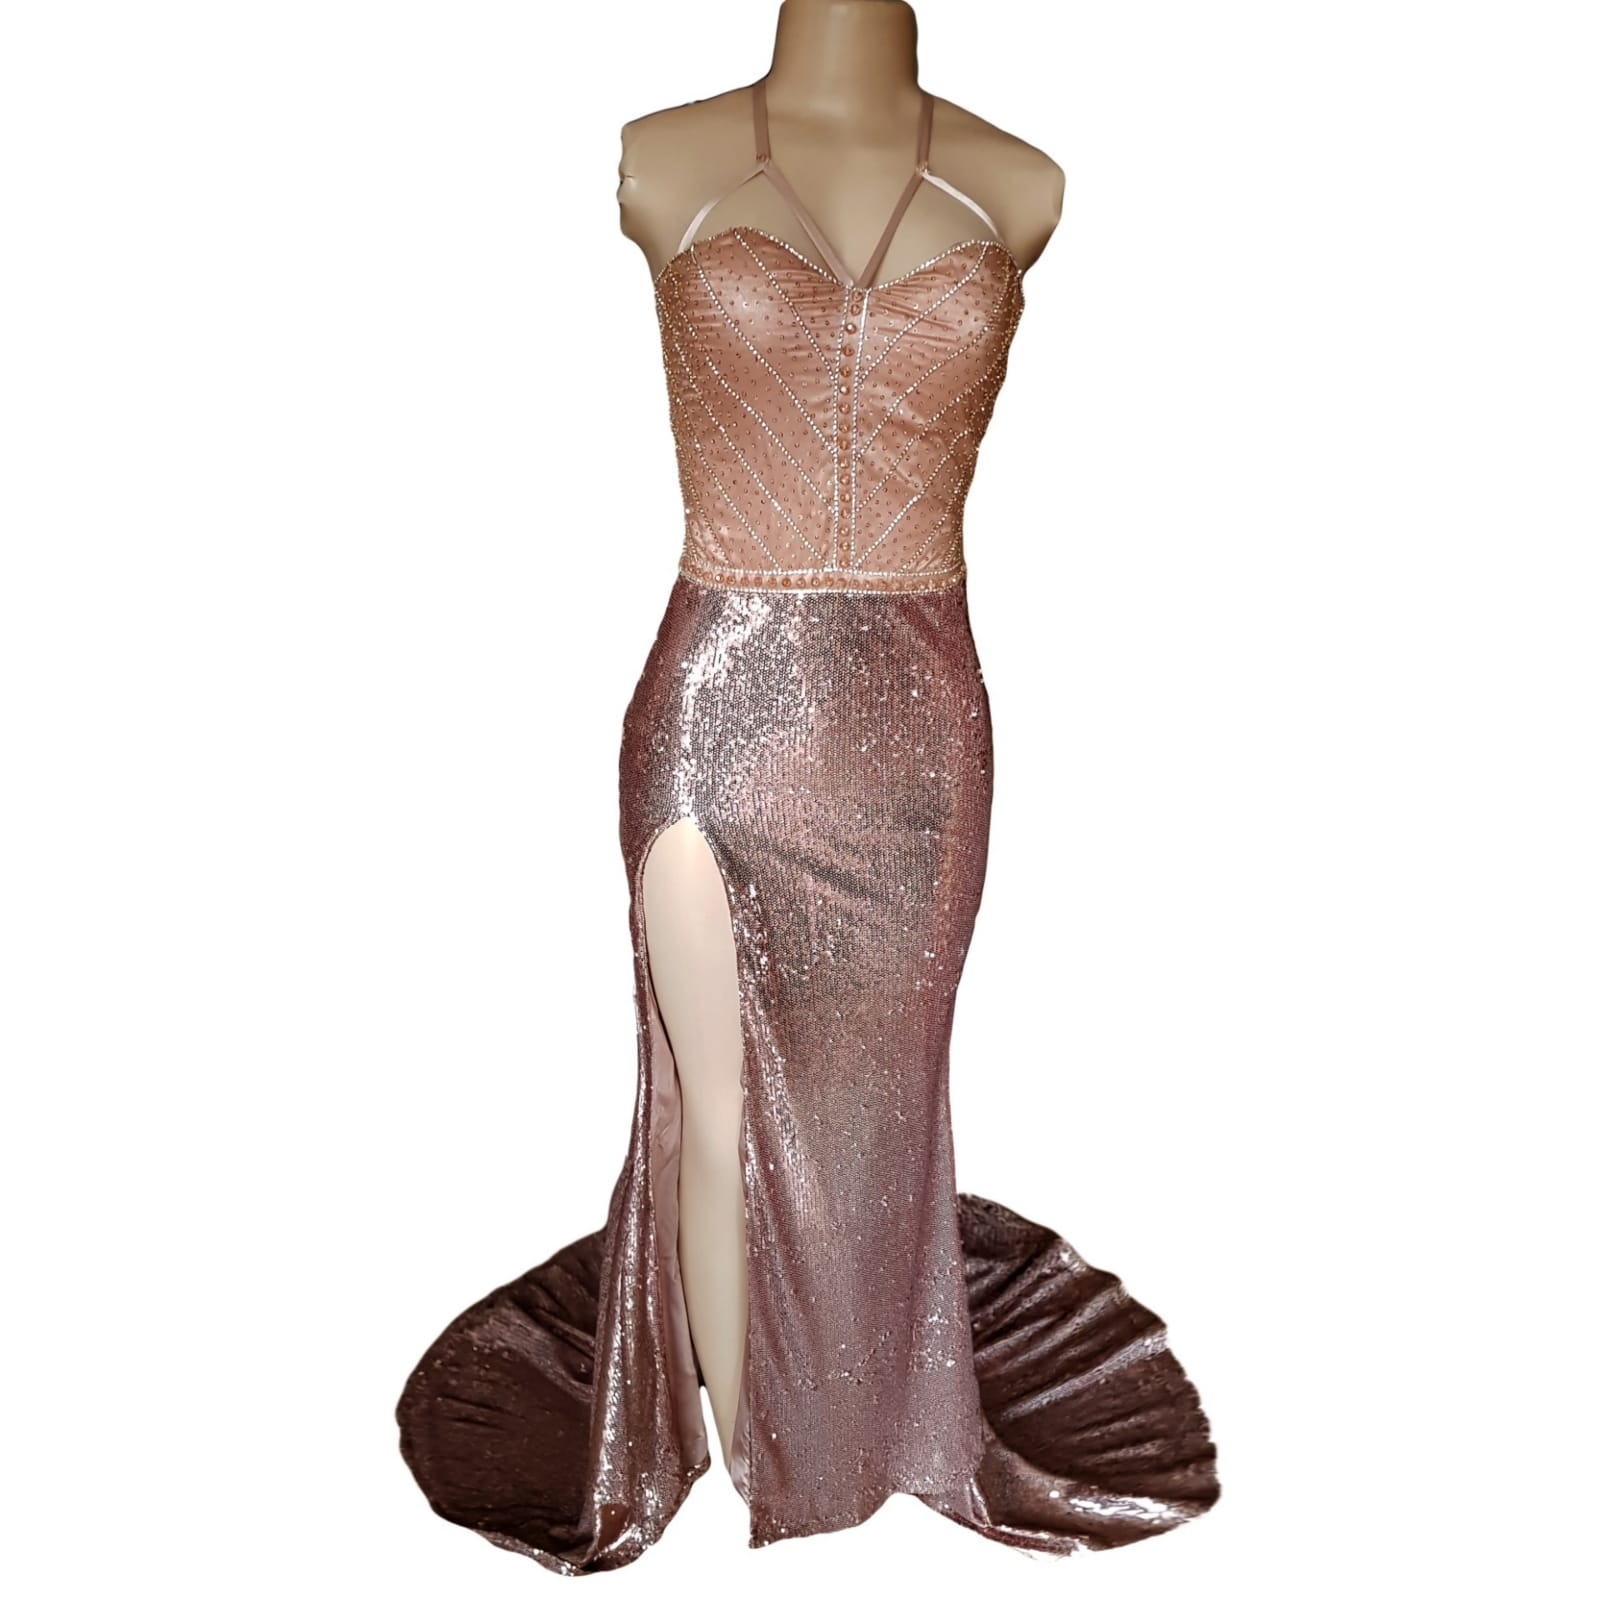 Rose gold sequins beaded matric dance dress with a beaded bodice 6 rose gold sequins beaded matric dance dress with a beaded bodice, an open lace-up back. High slit and a train.